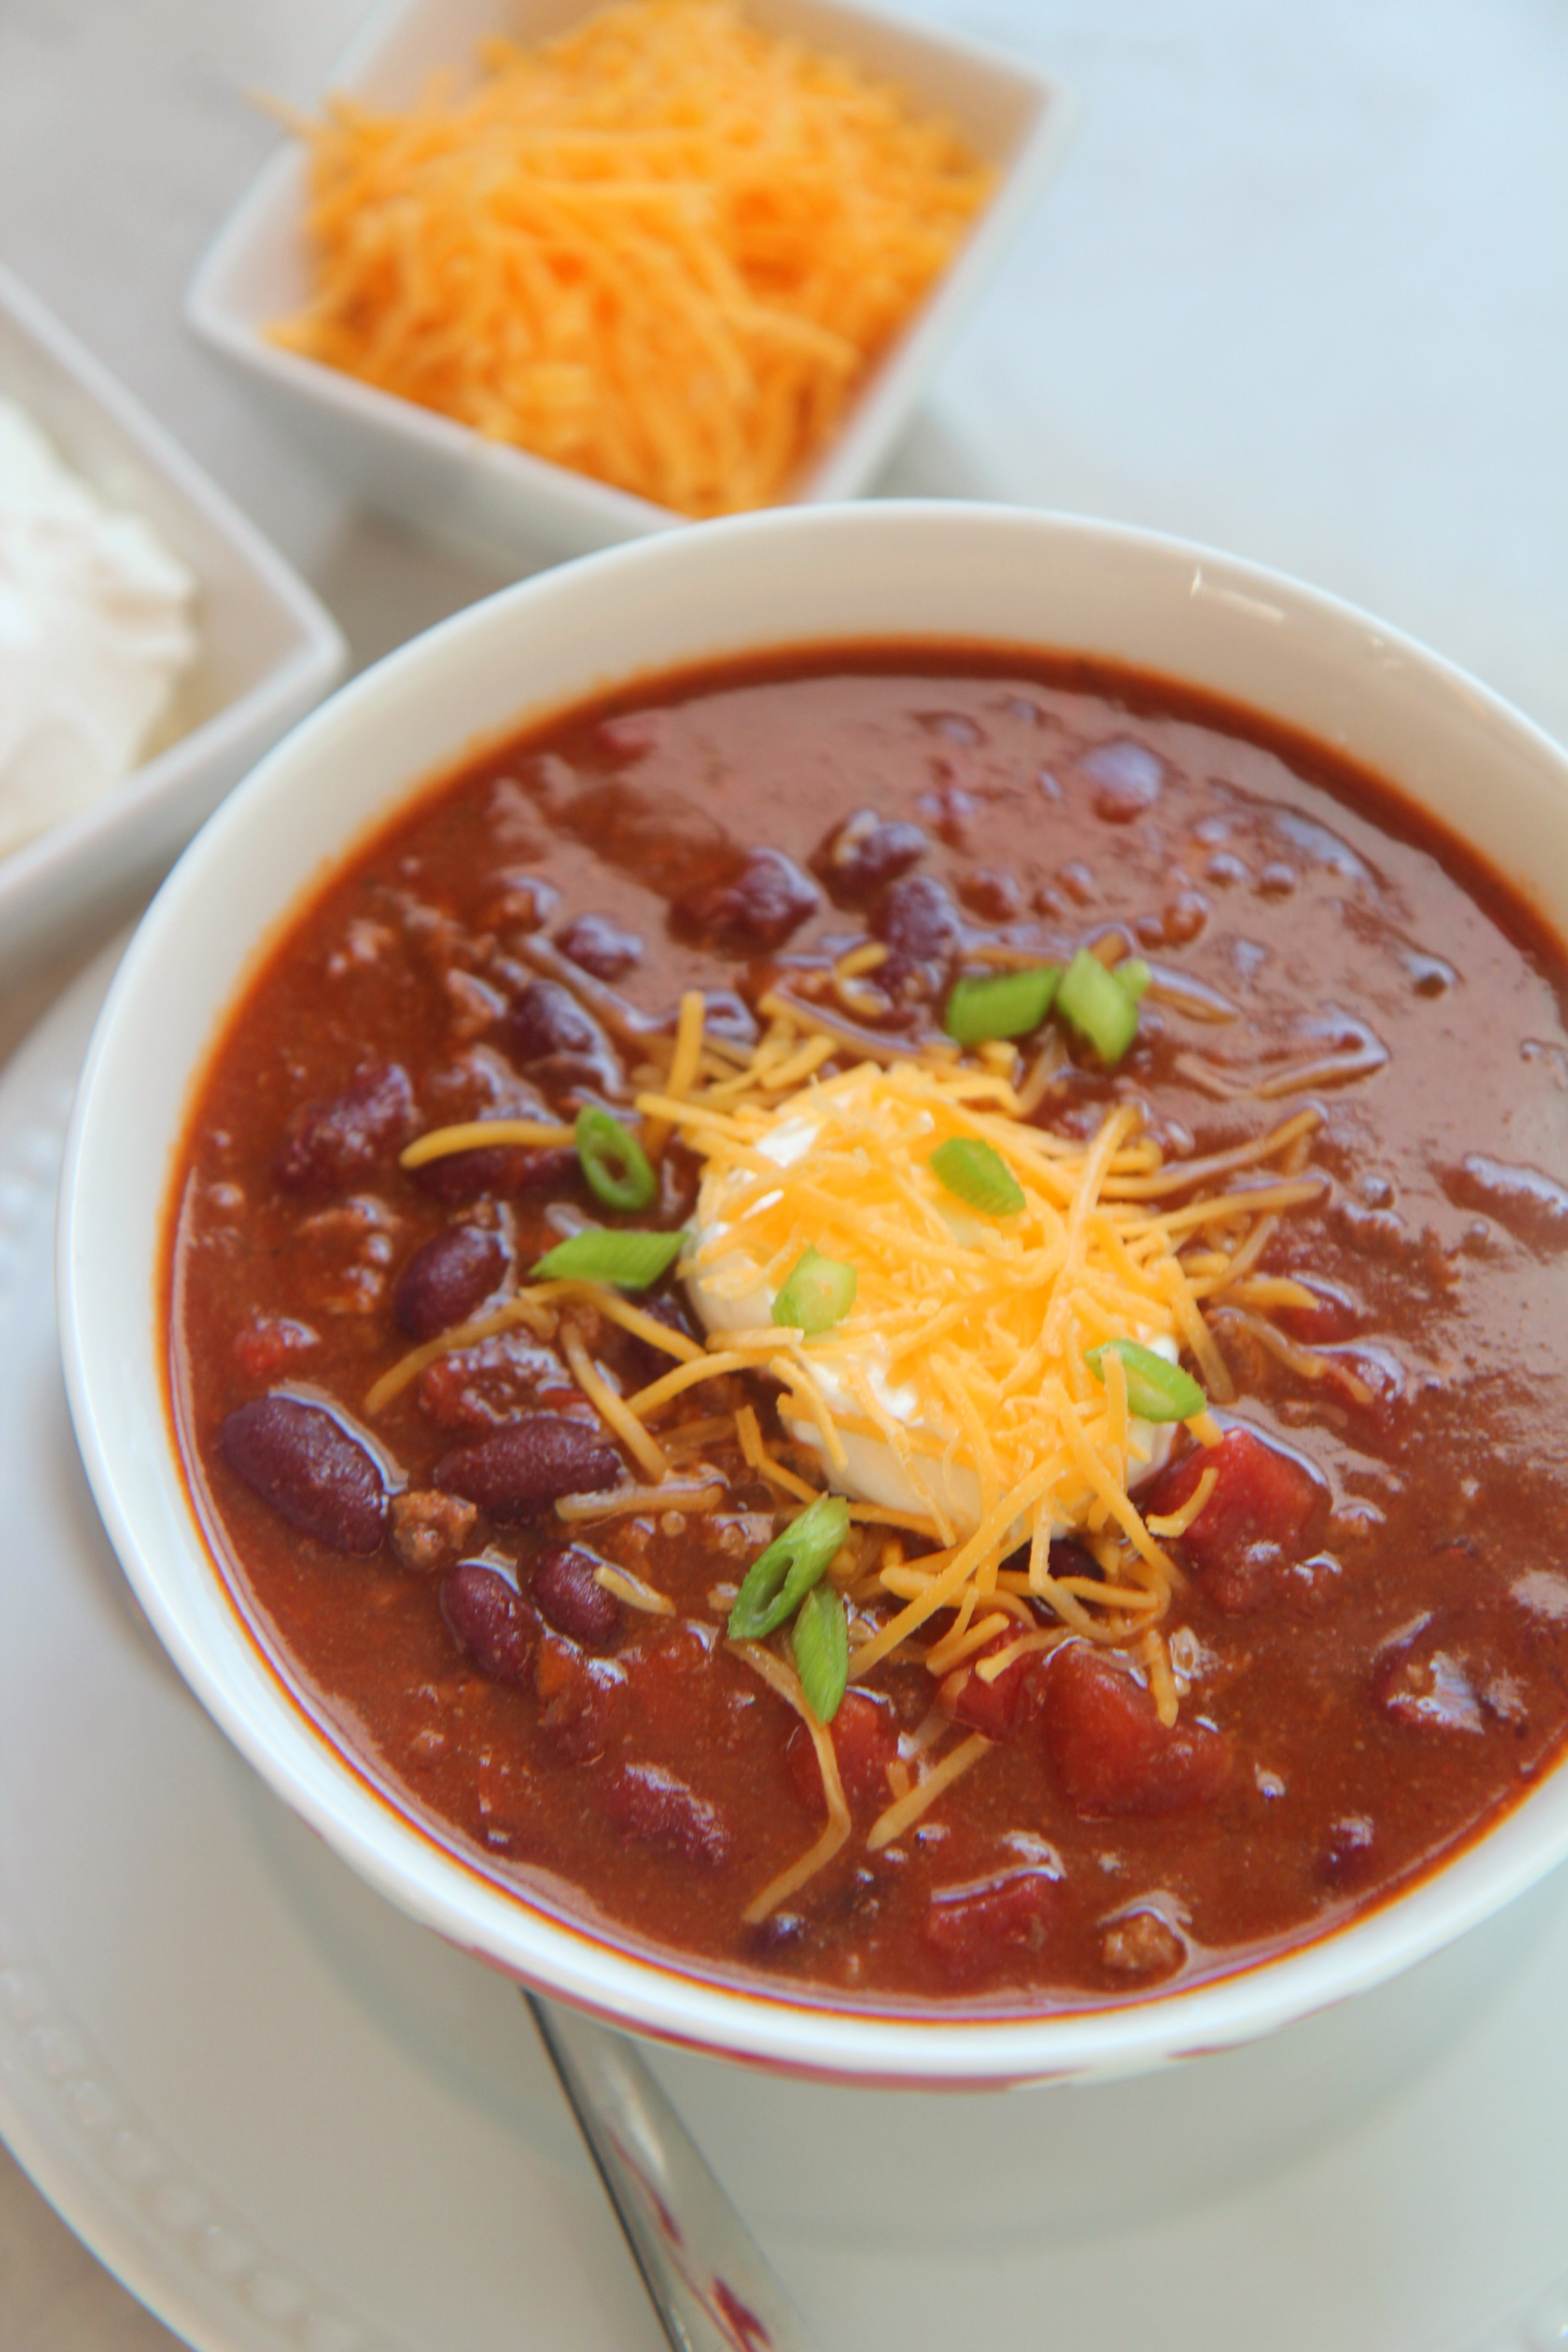 A soothing warm cup of chili is a great way warm up after a long day